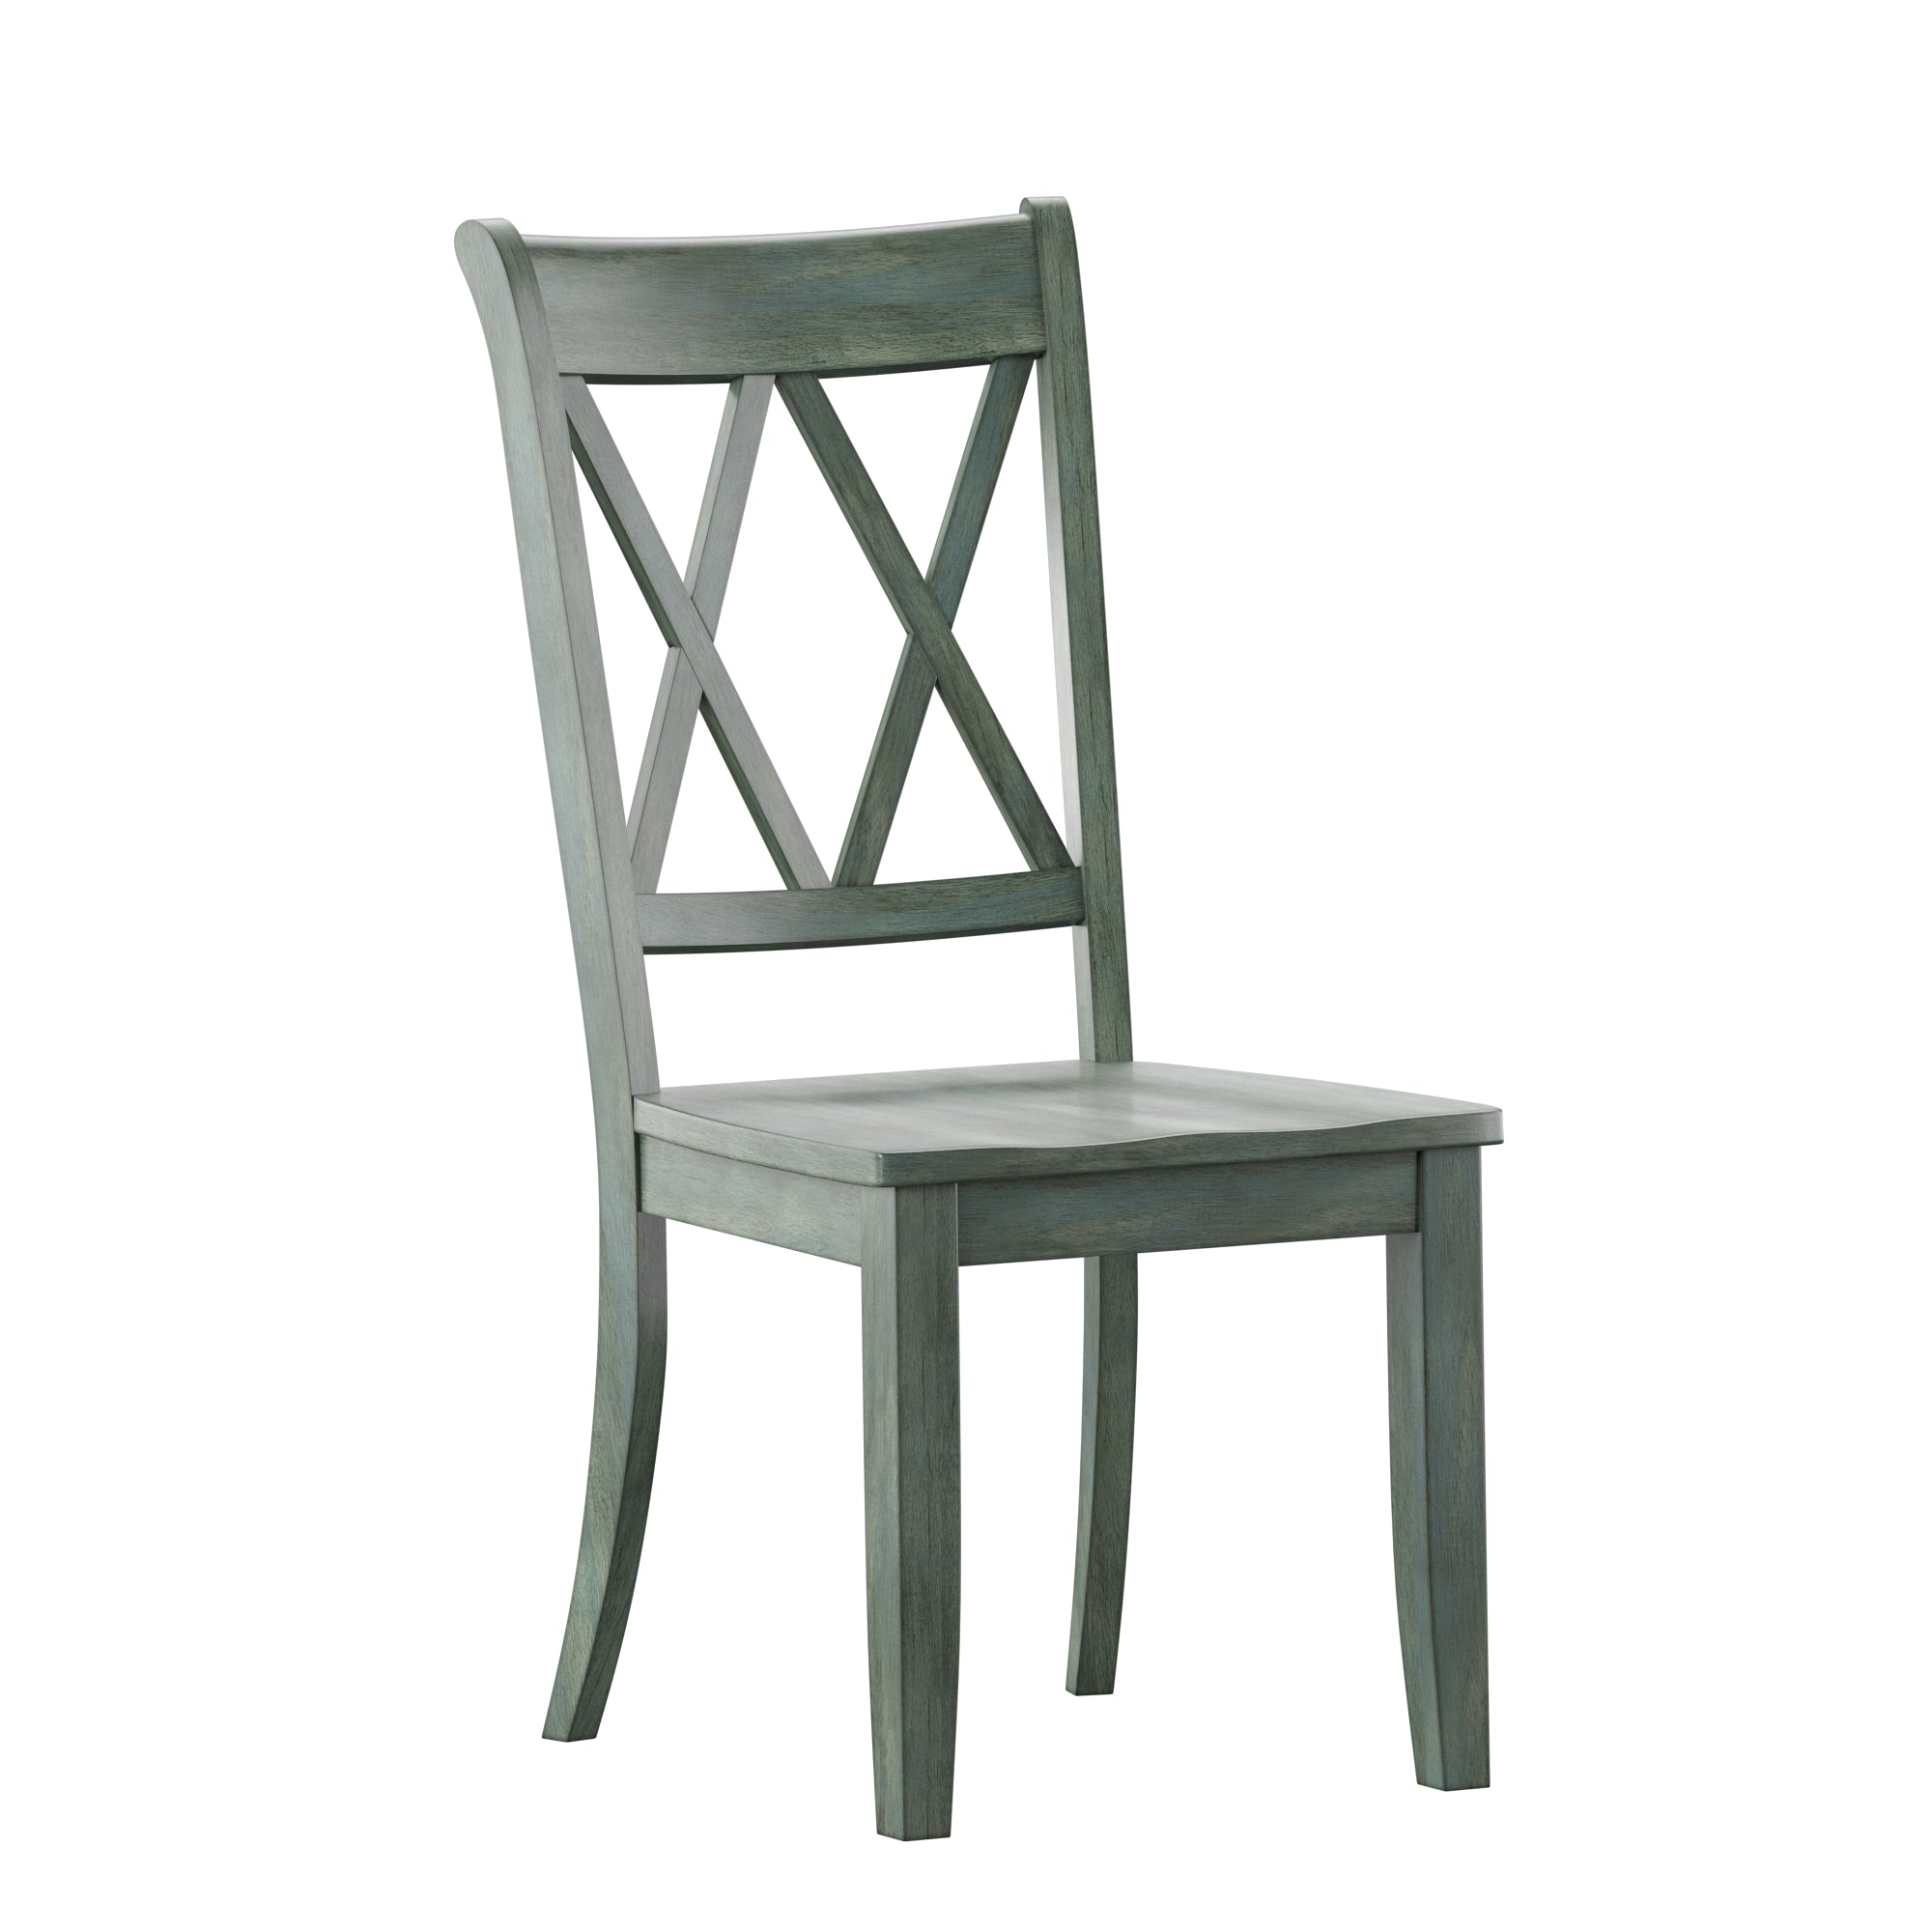 Double X Back Wood Dining Chair (Set of 2) - Antique Sage Green